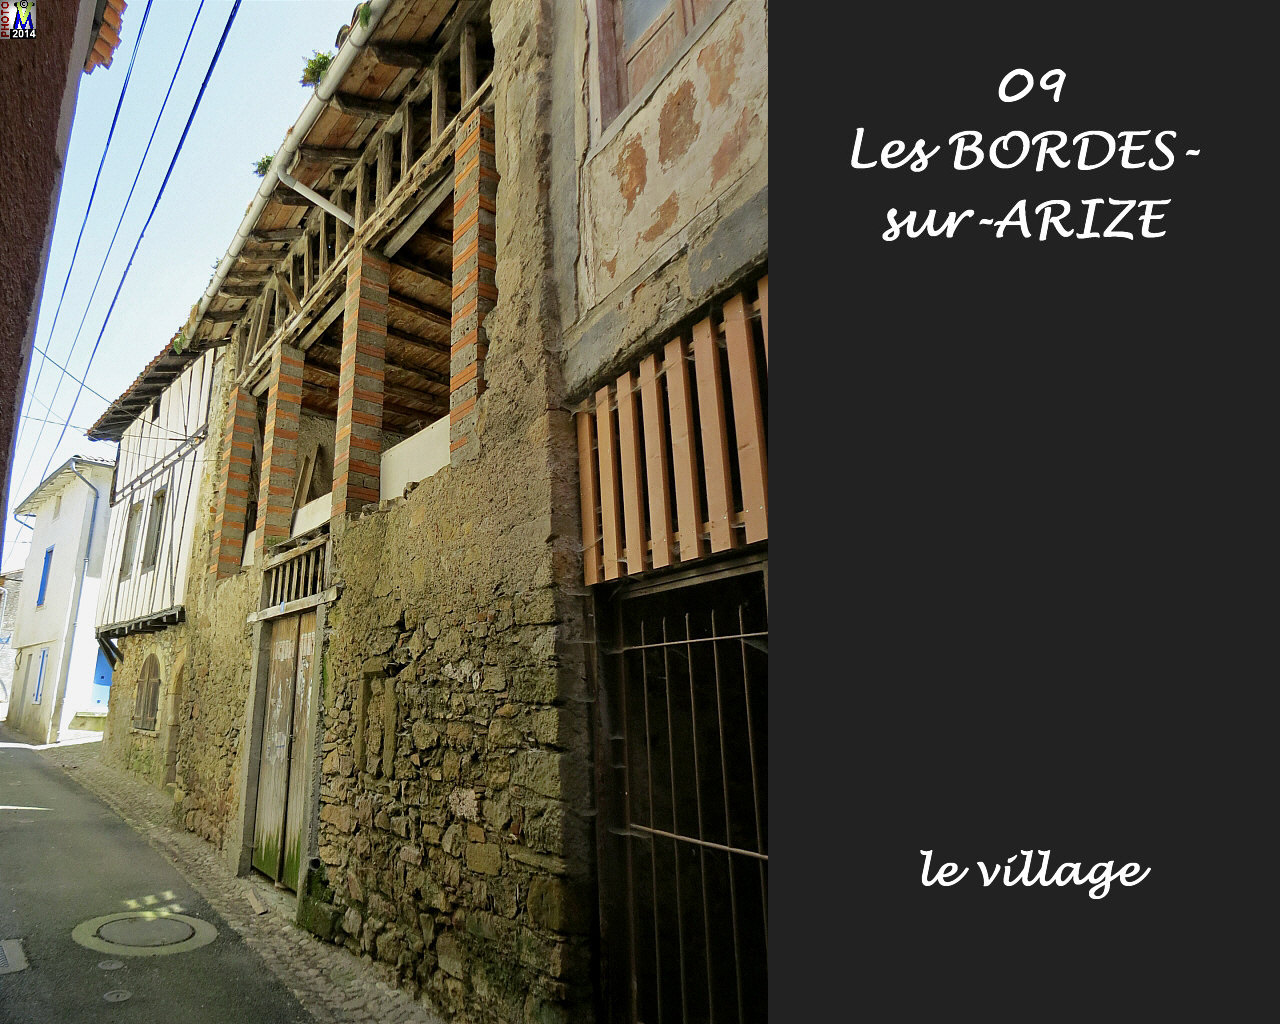 09BORDES-ARIZE_village_106.jpg